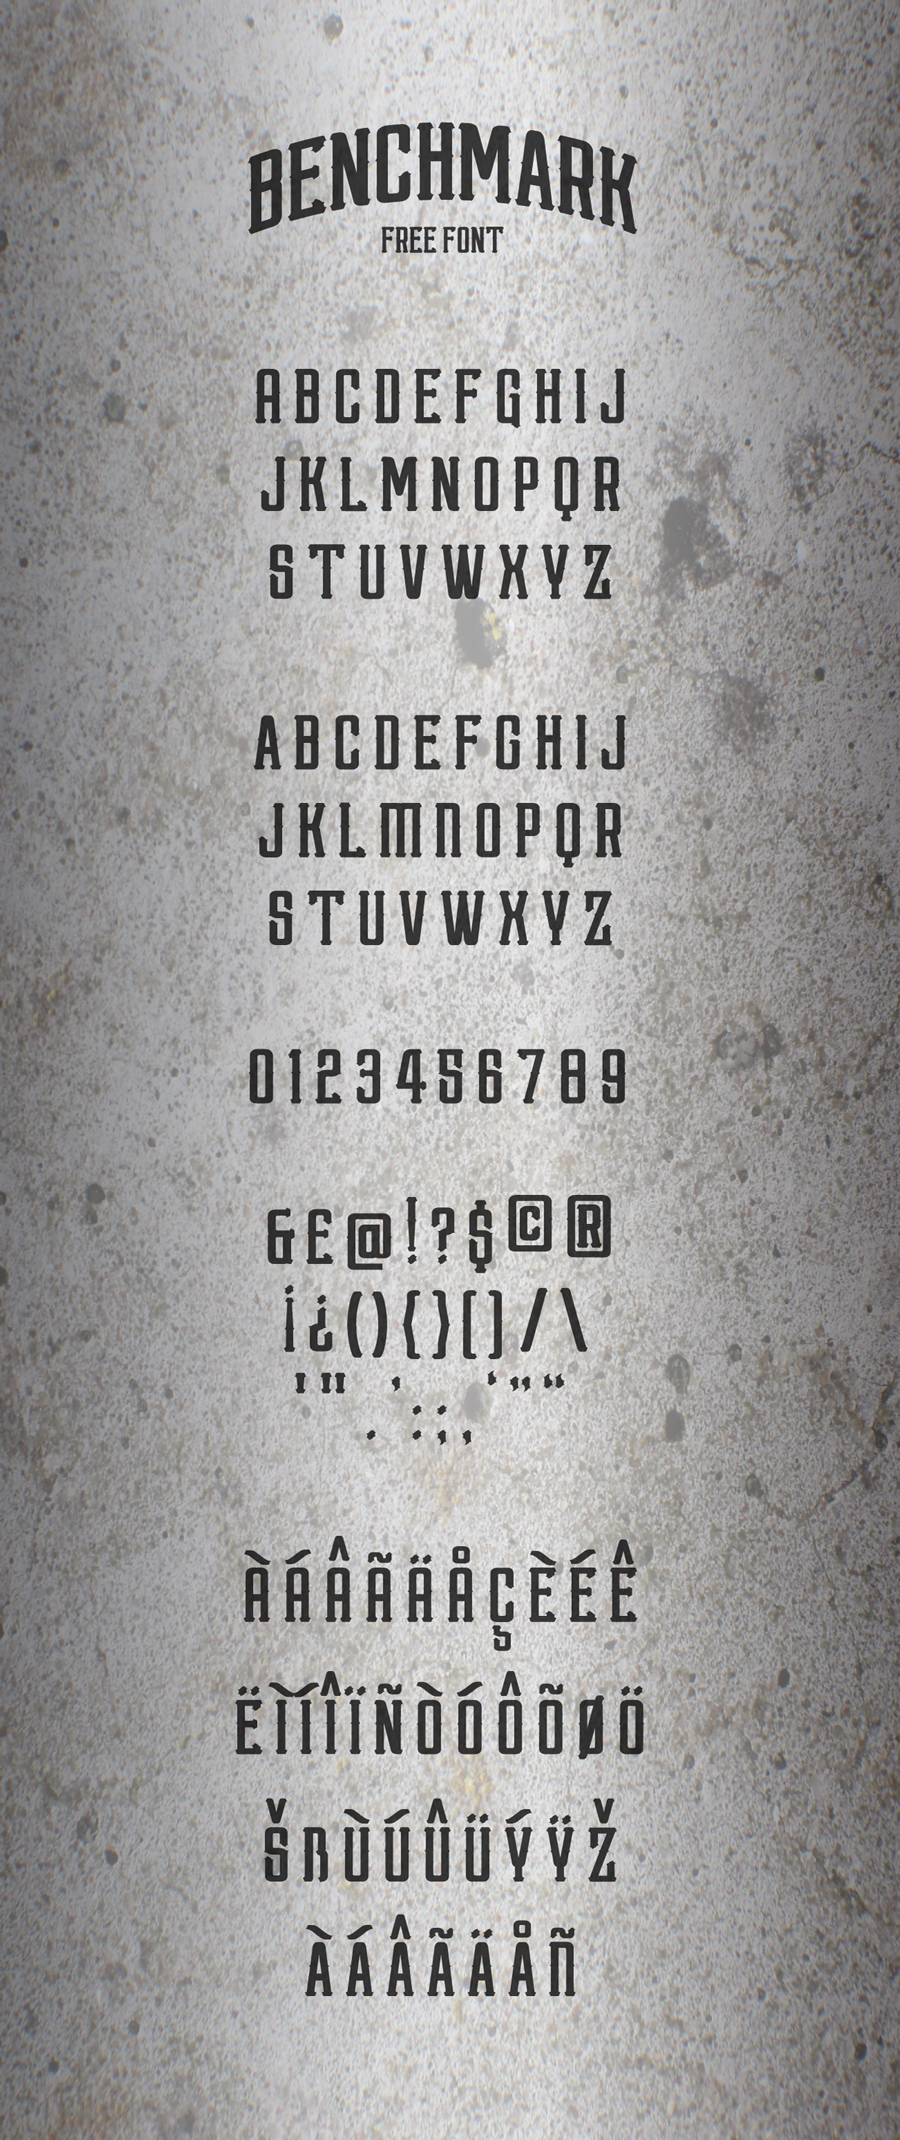 02_Benchmark-Free-Font